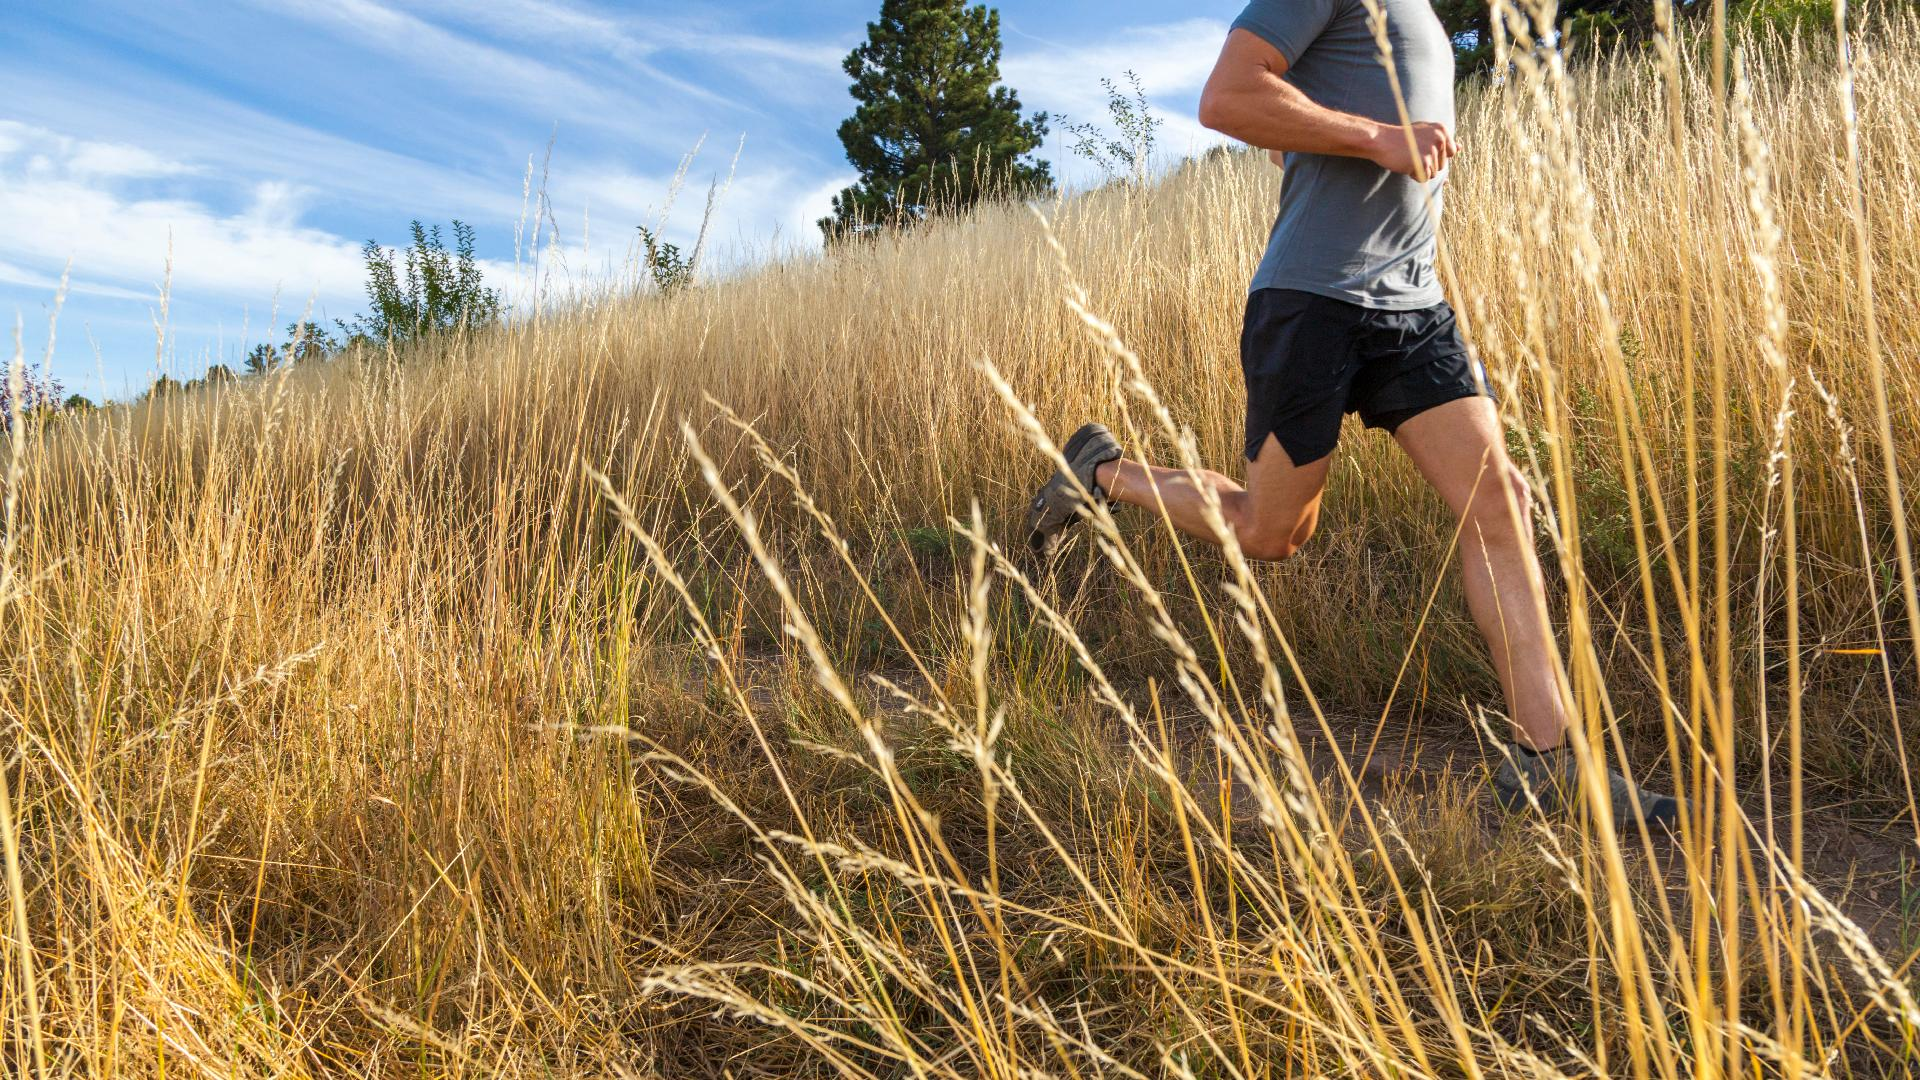 Varied terrain and outdoor recreation